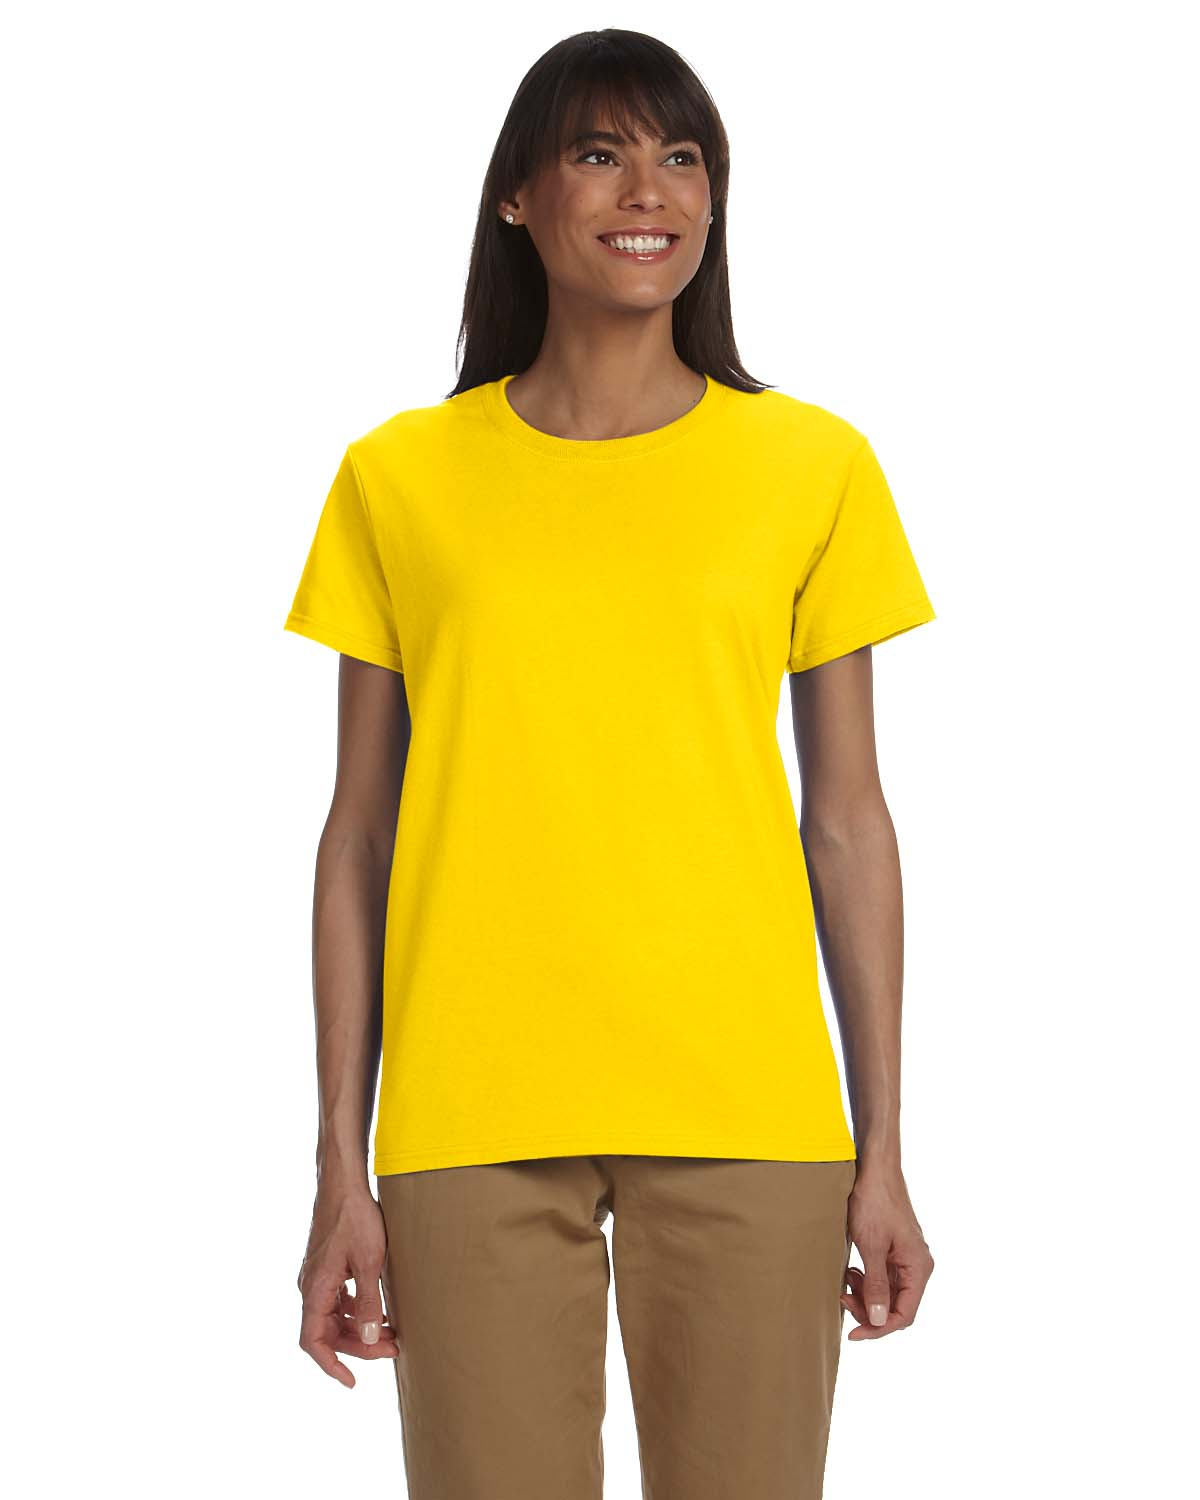 New gildan heavy weight ultra cotton women 39 s short sleeve for Gildan brand t shirt size chart